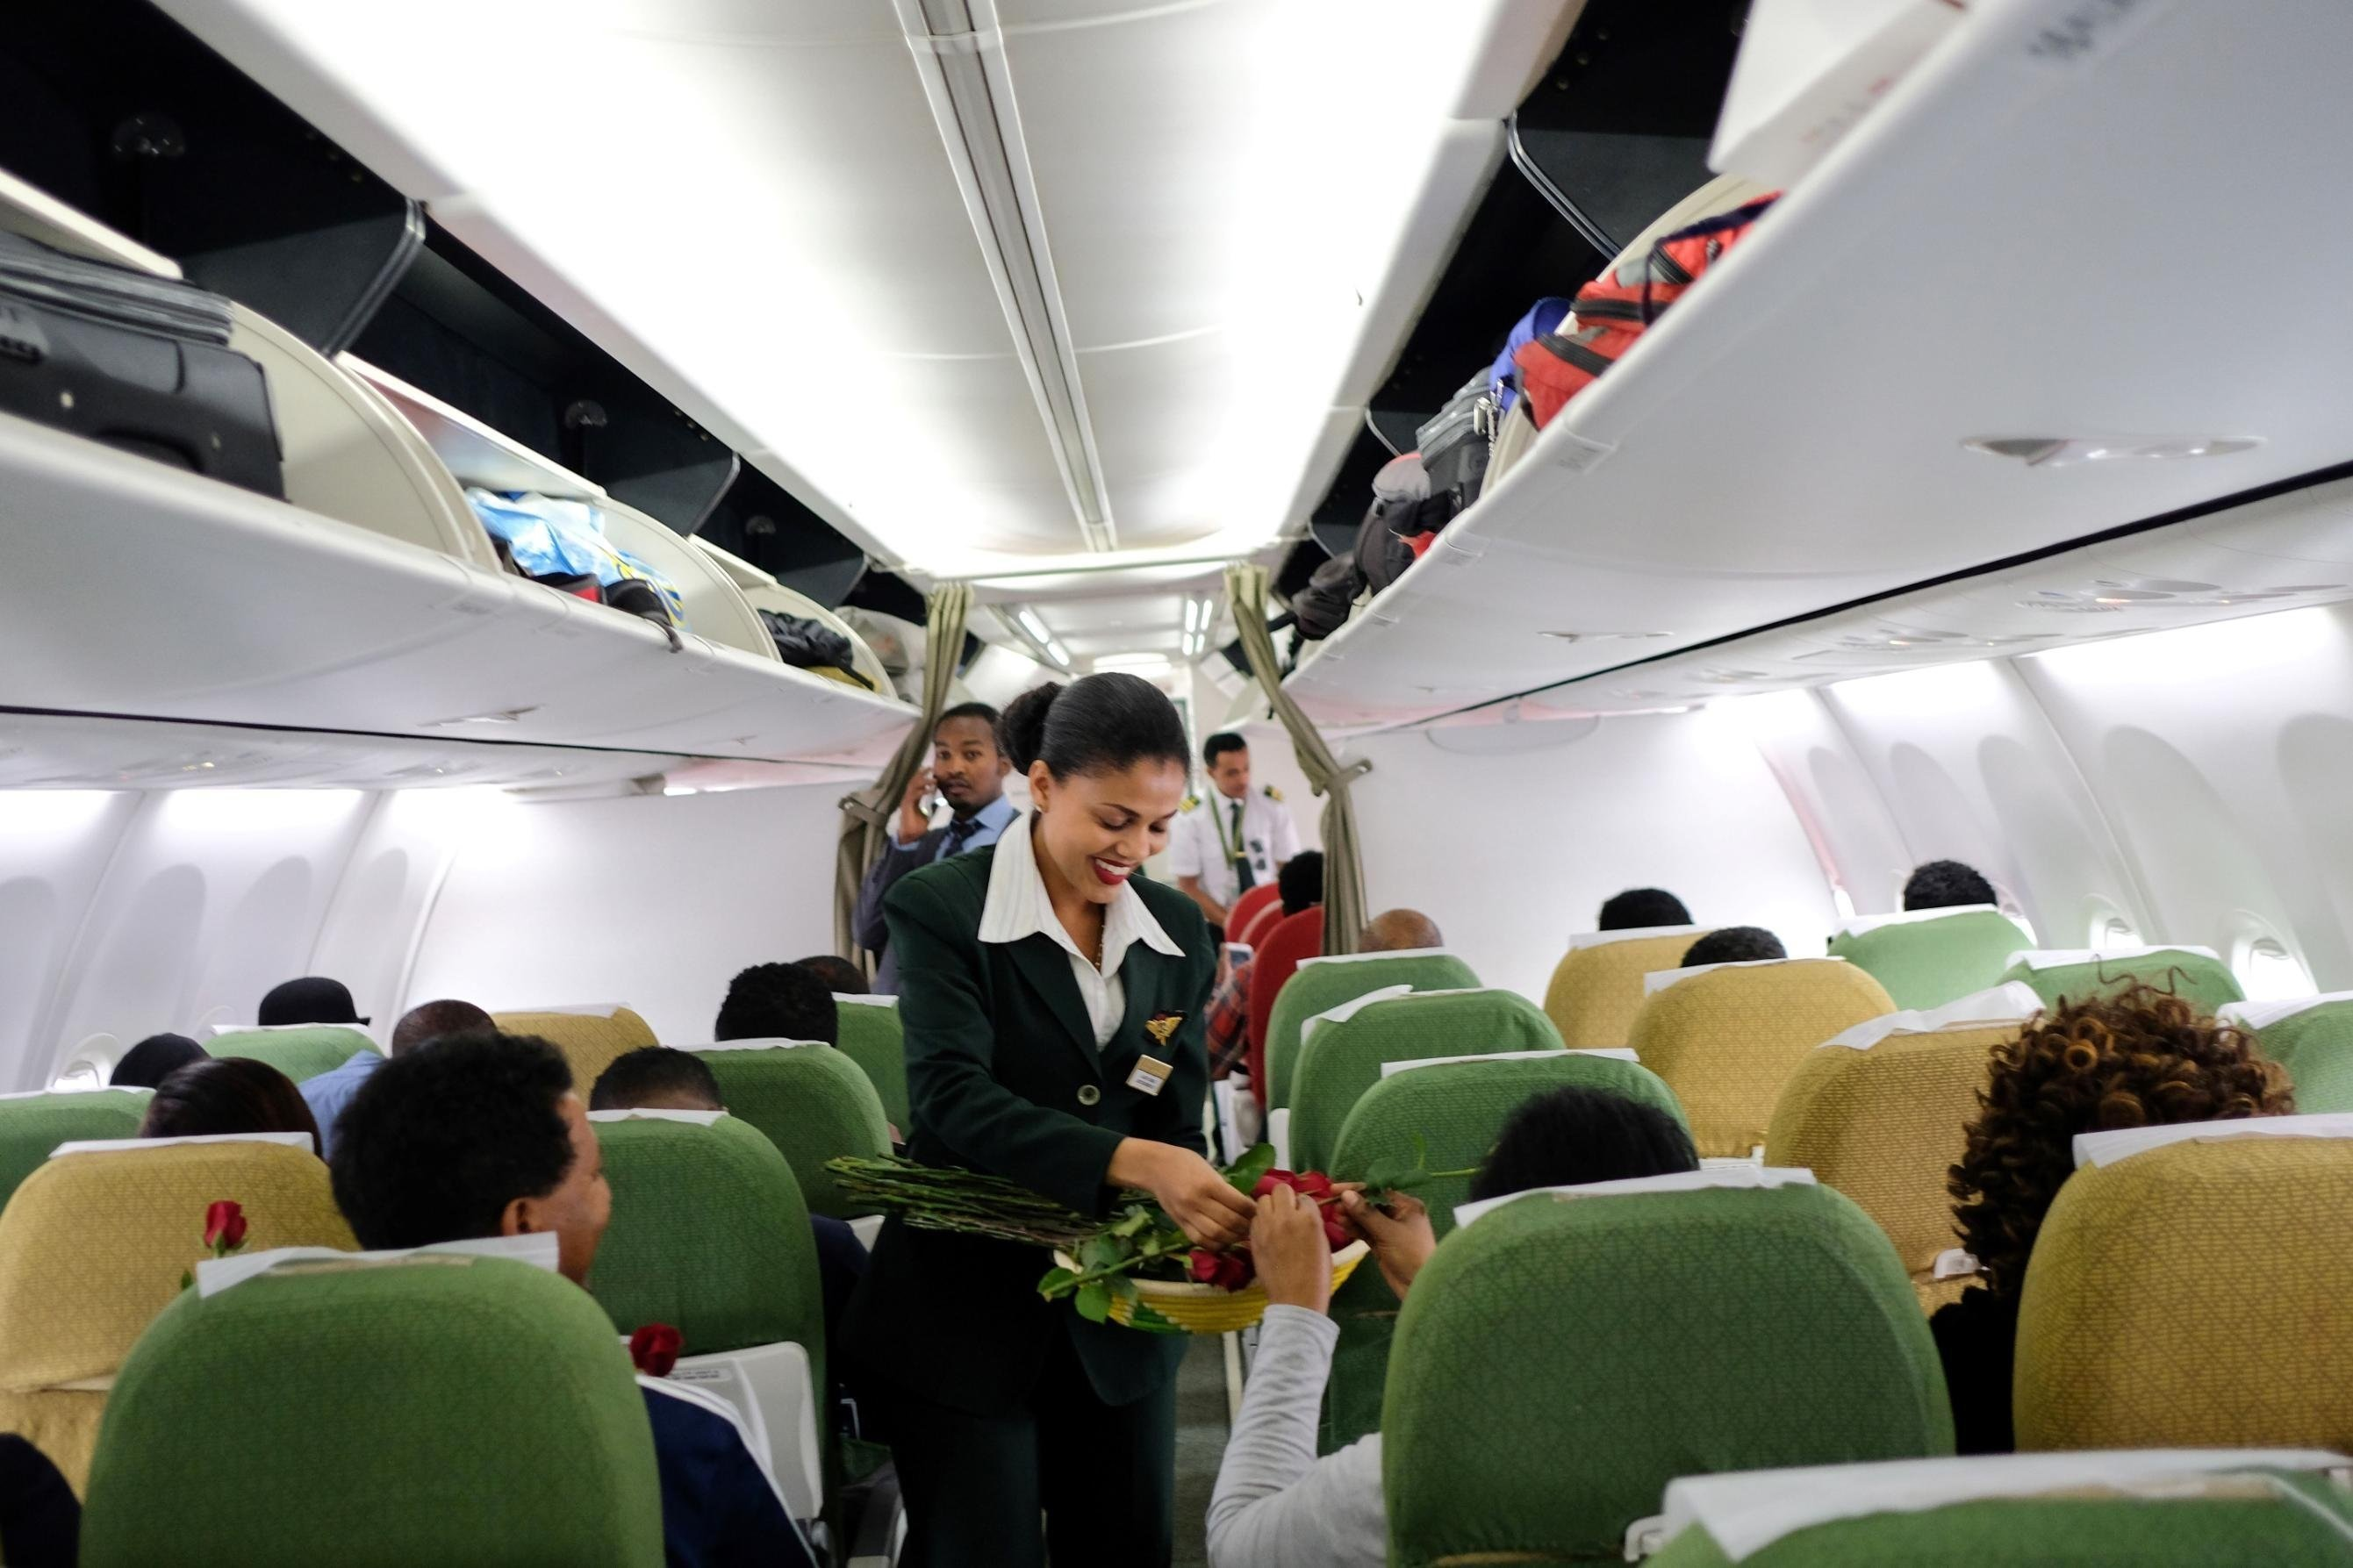 First Commercial Flight in 20 Years Departs Ethiopia for Eritrea